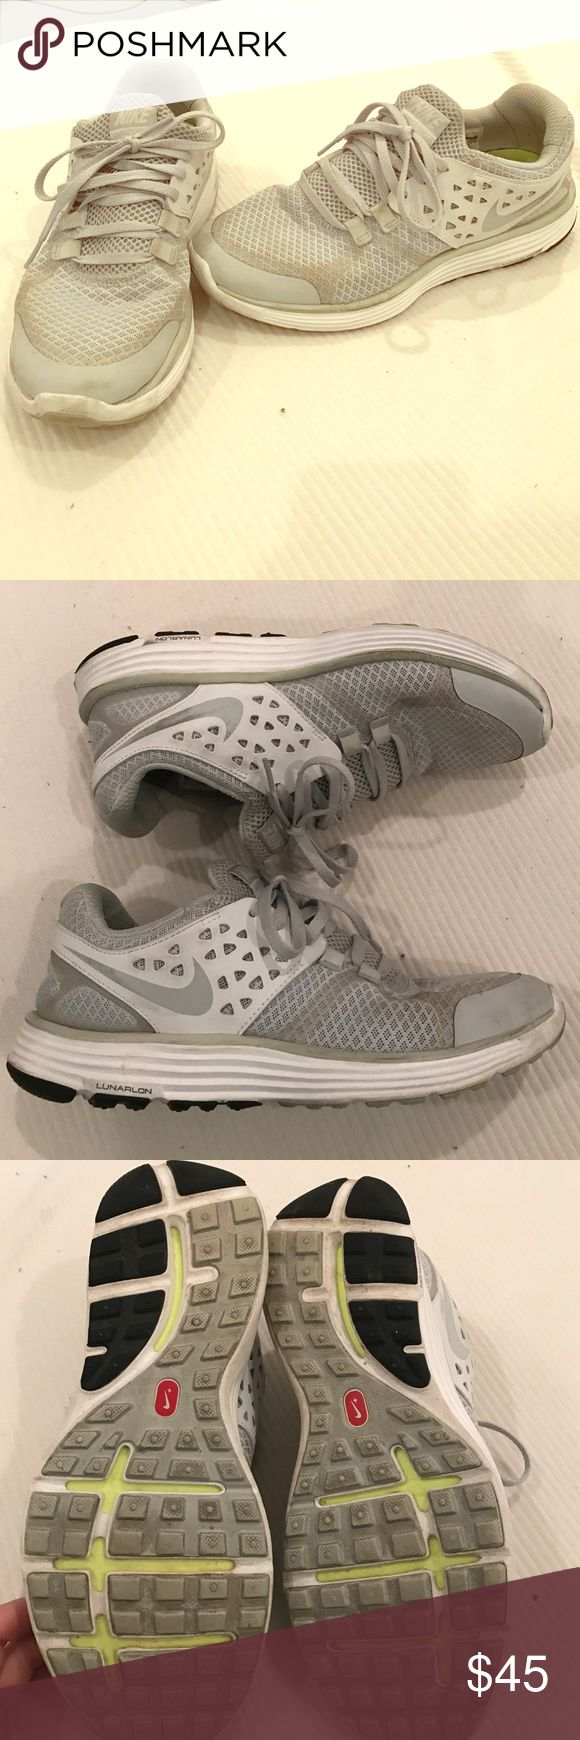 Barely Worn! Nike Lunar Swift T-3 sneakers Only worn for a short period of time, not the running shoe I was looking for. Nike Lunar Swift with dynamic arch support, attached tongue style so no worrying about the tongue sliding around. Great show and great deal Nike Shoes Sneakers